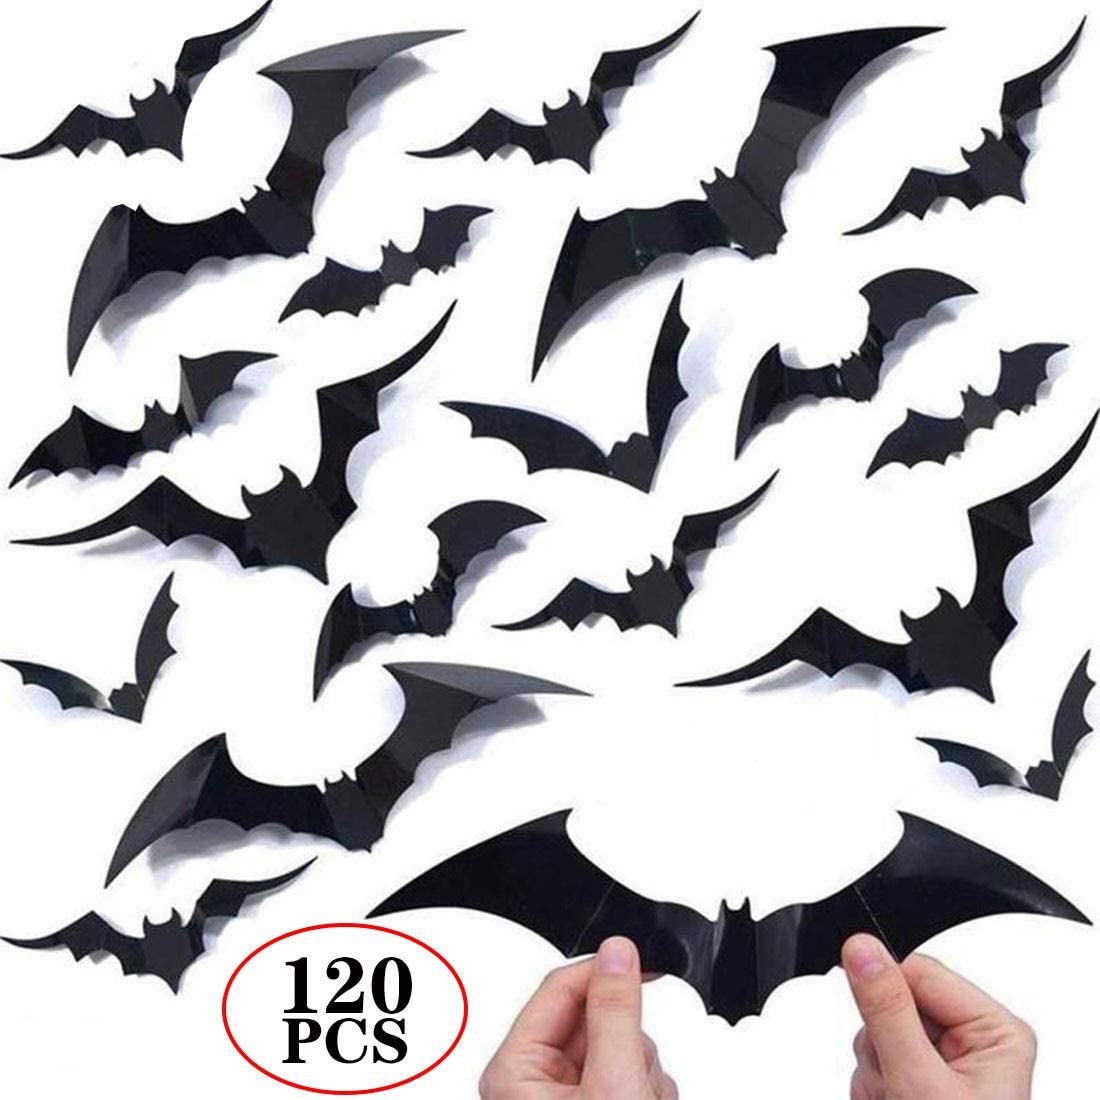 120PCS/4SIZE 3D Bats Sticker DIY Halloween Party Supplies Reusable Decorative Scary Wall Decal for Home Window Clings Decorations